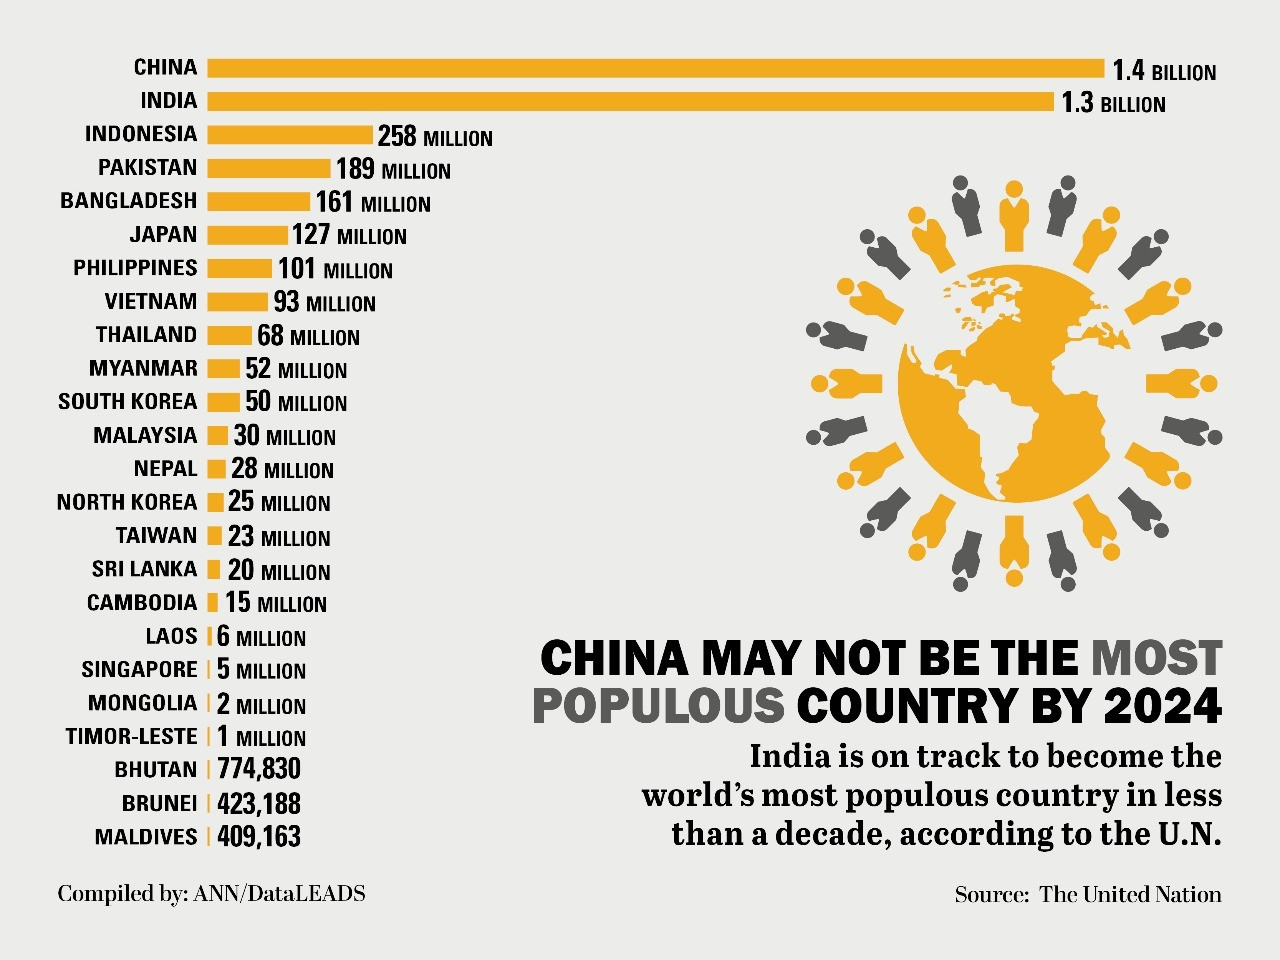 China may not be the most populous country by 2024 thumbnail